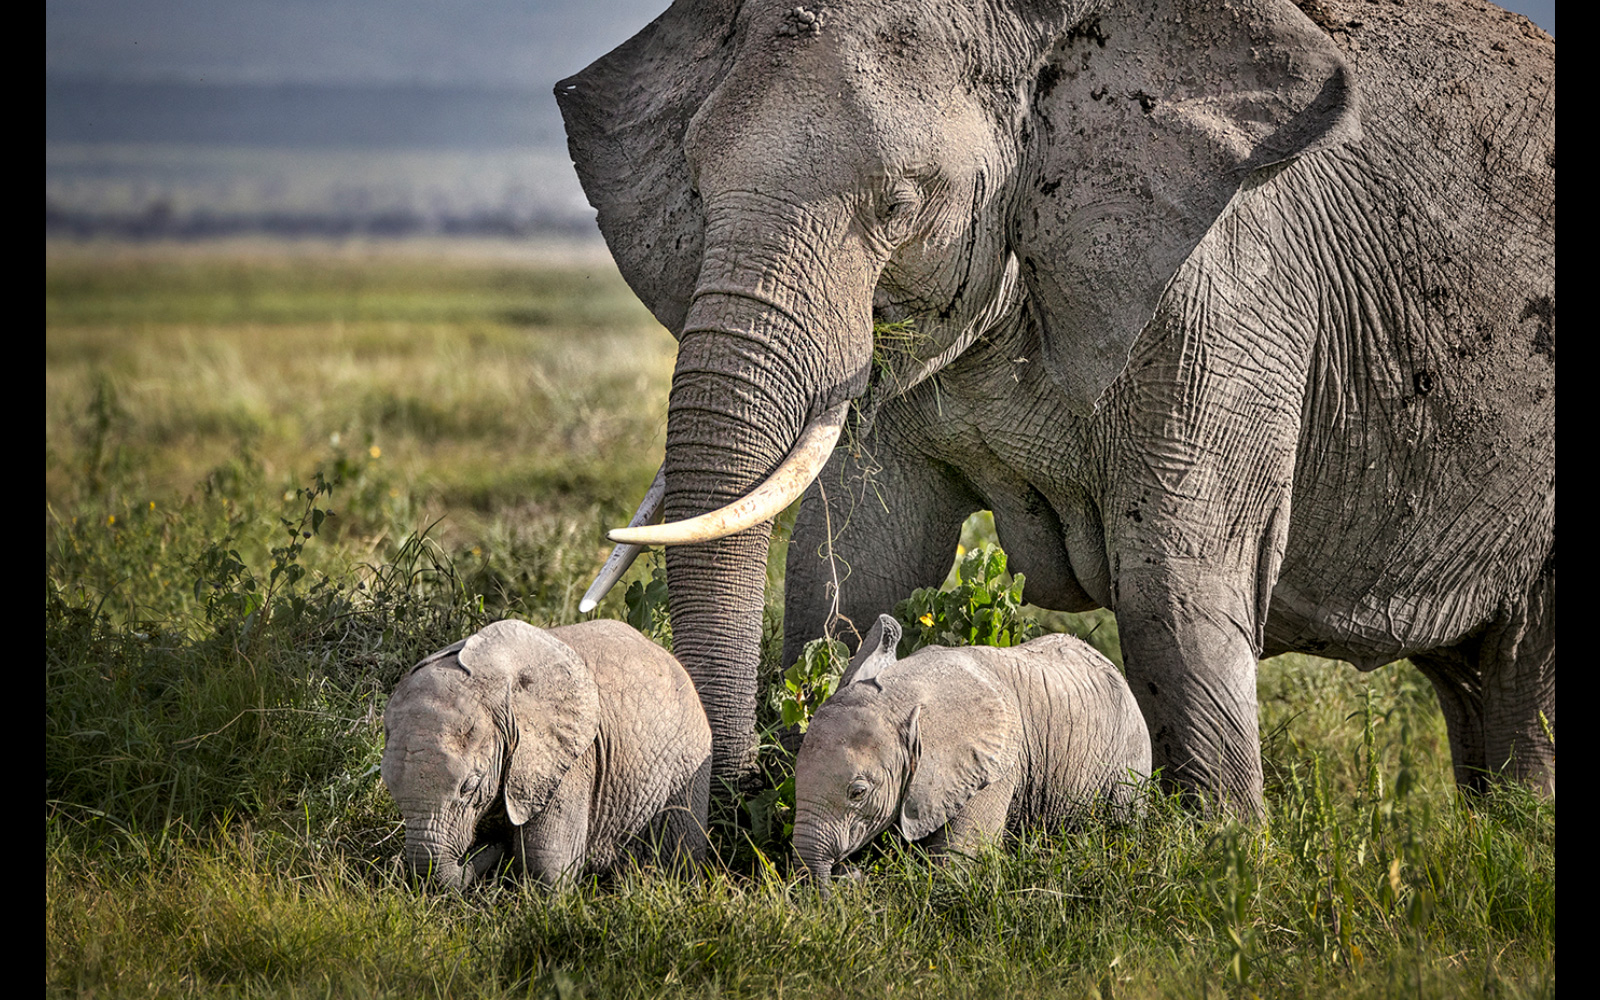 An elephant with twin calves in Amboseli National Park, Kenya © Kevin Dooley